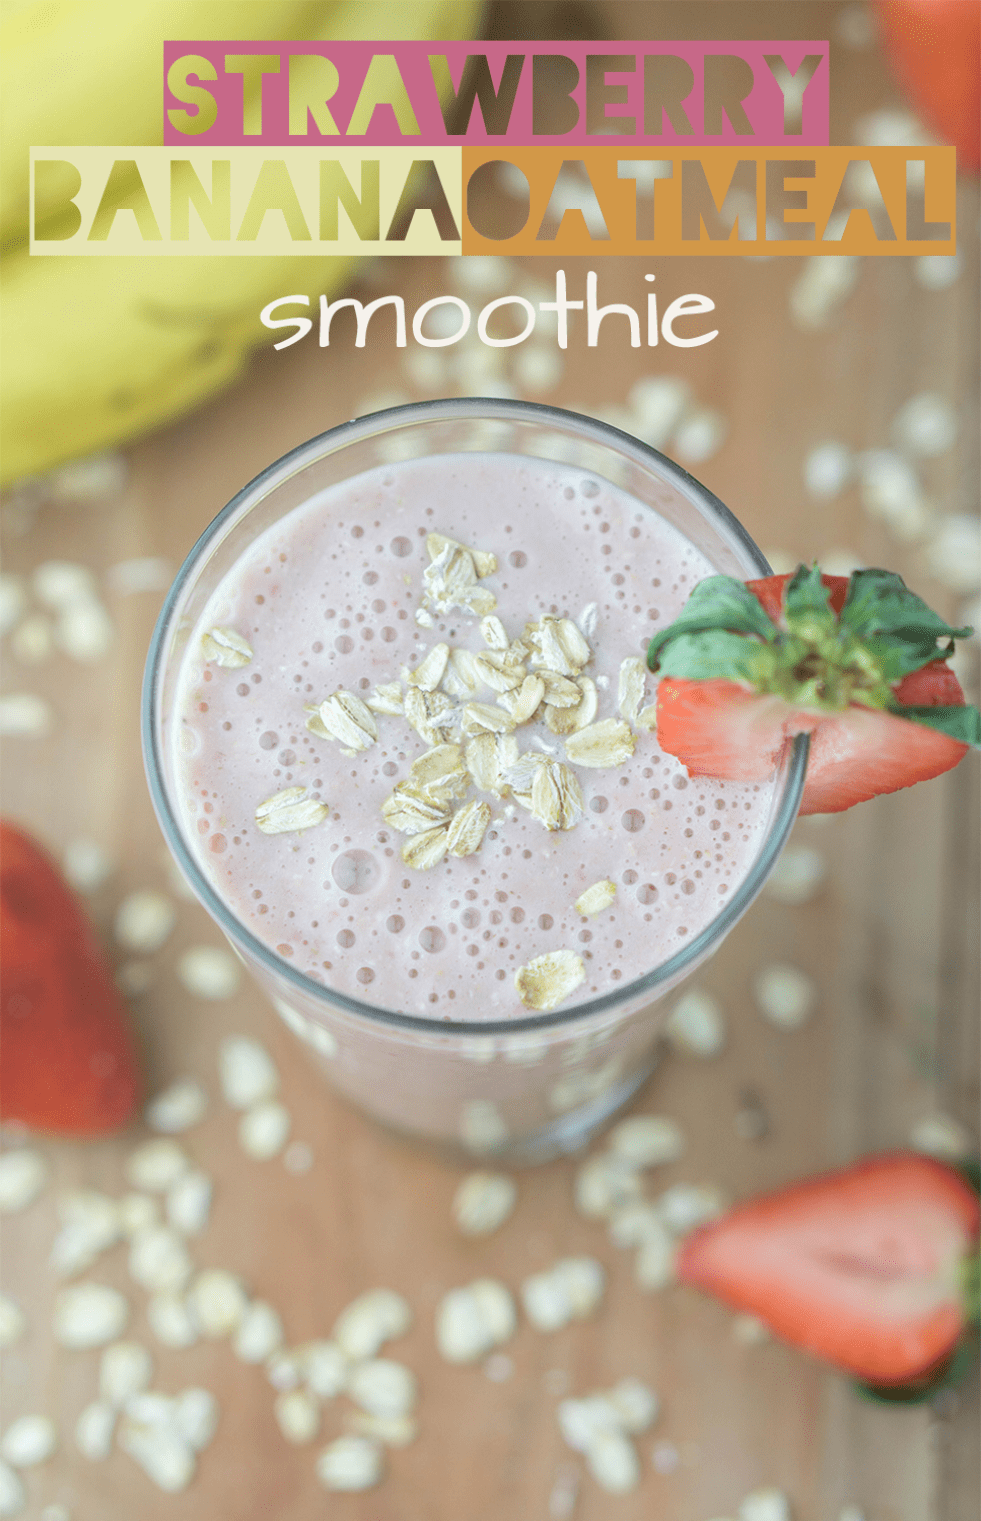 Strawberry Banana Oatmeal Smoothie! #healthy #strawberry #banana #oatmeal #smoothie | www.wakeuptowaffles.com